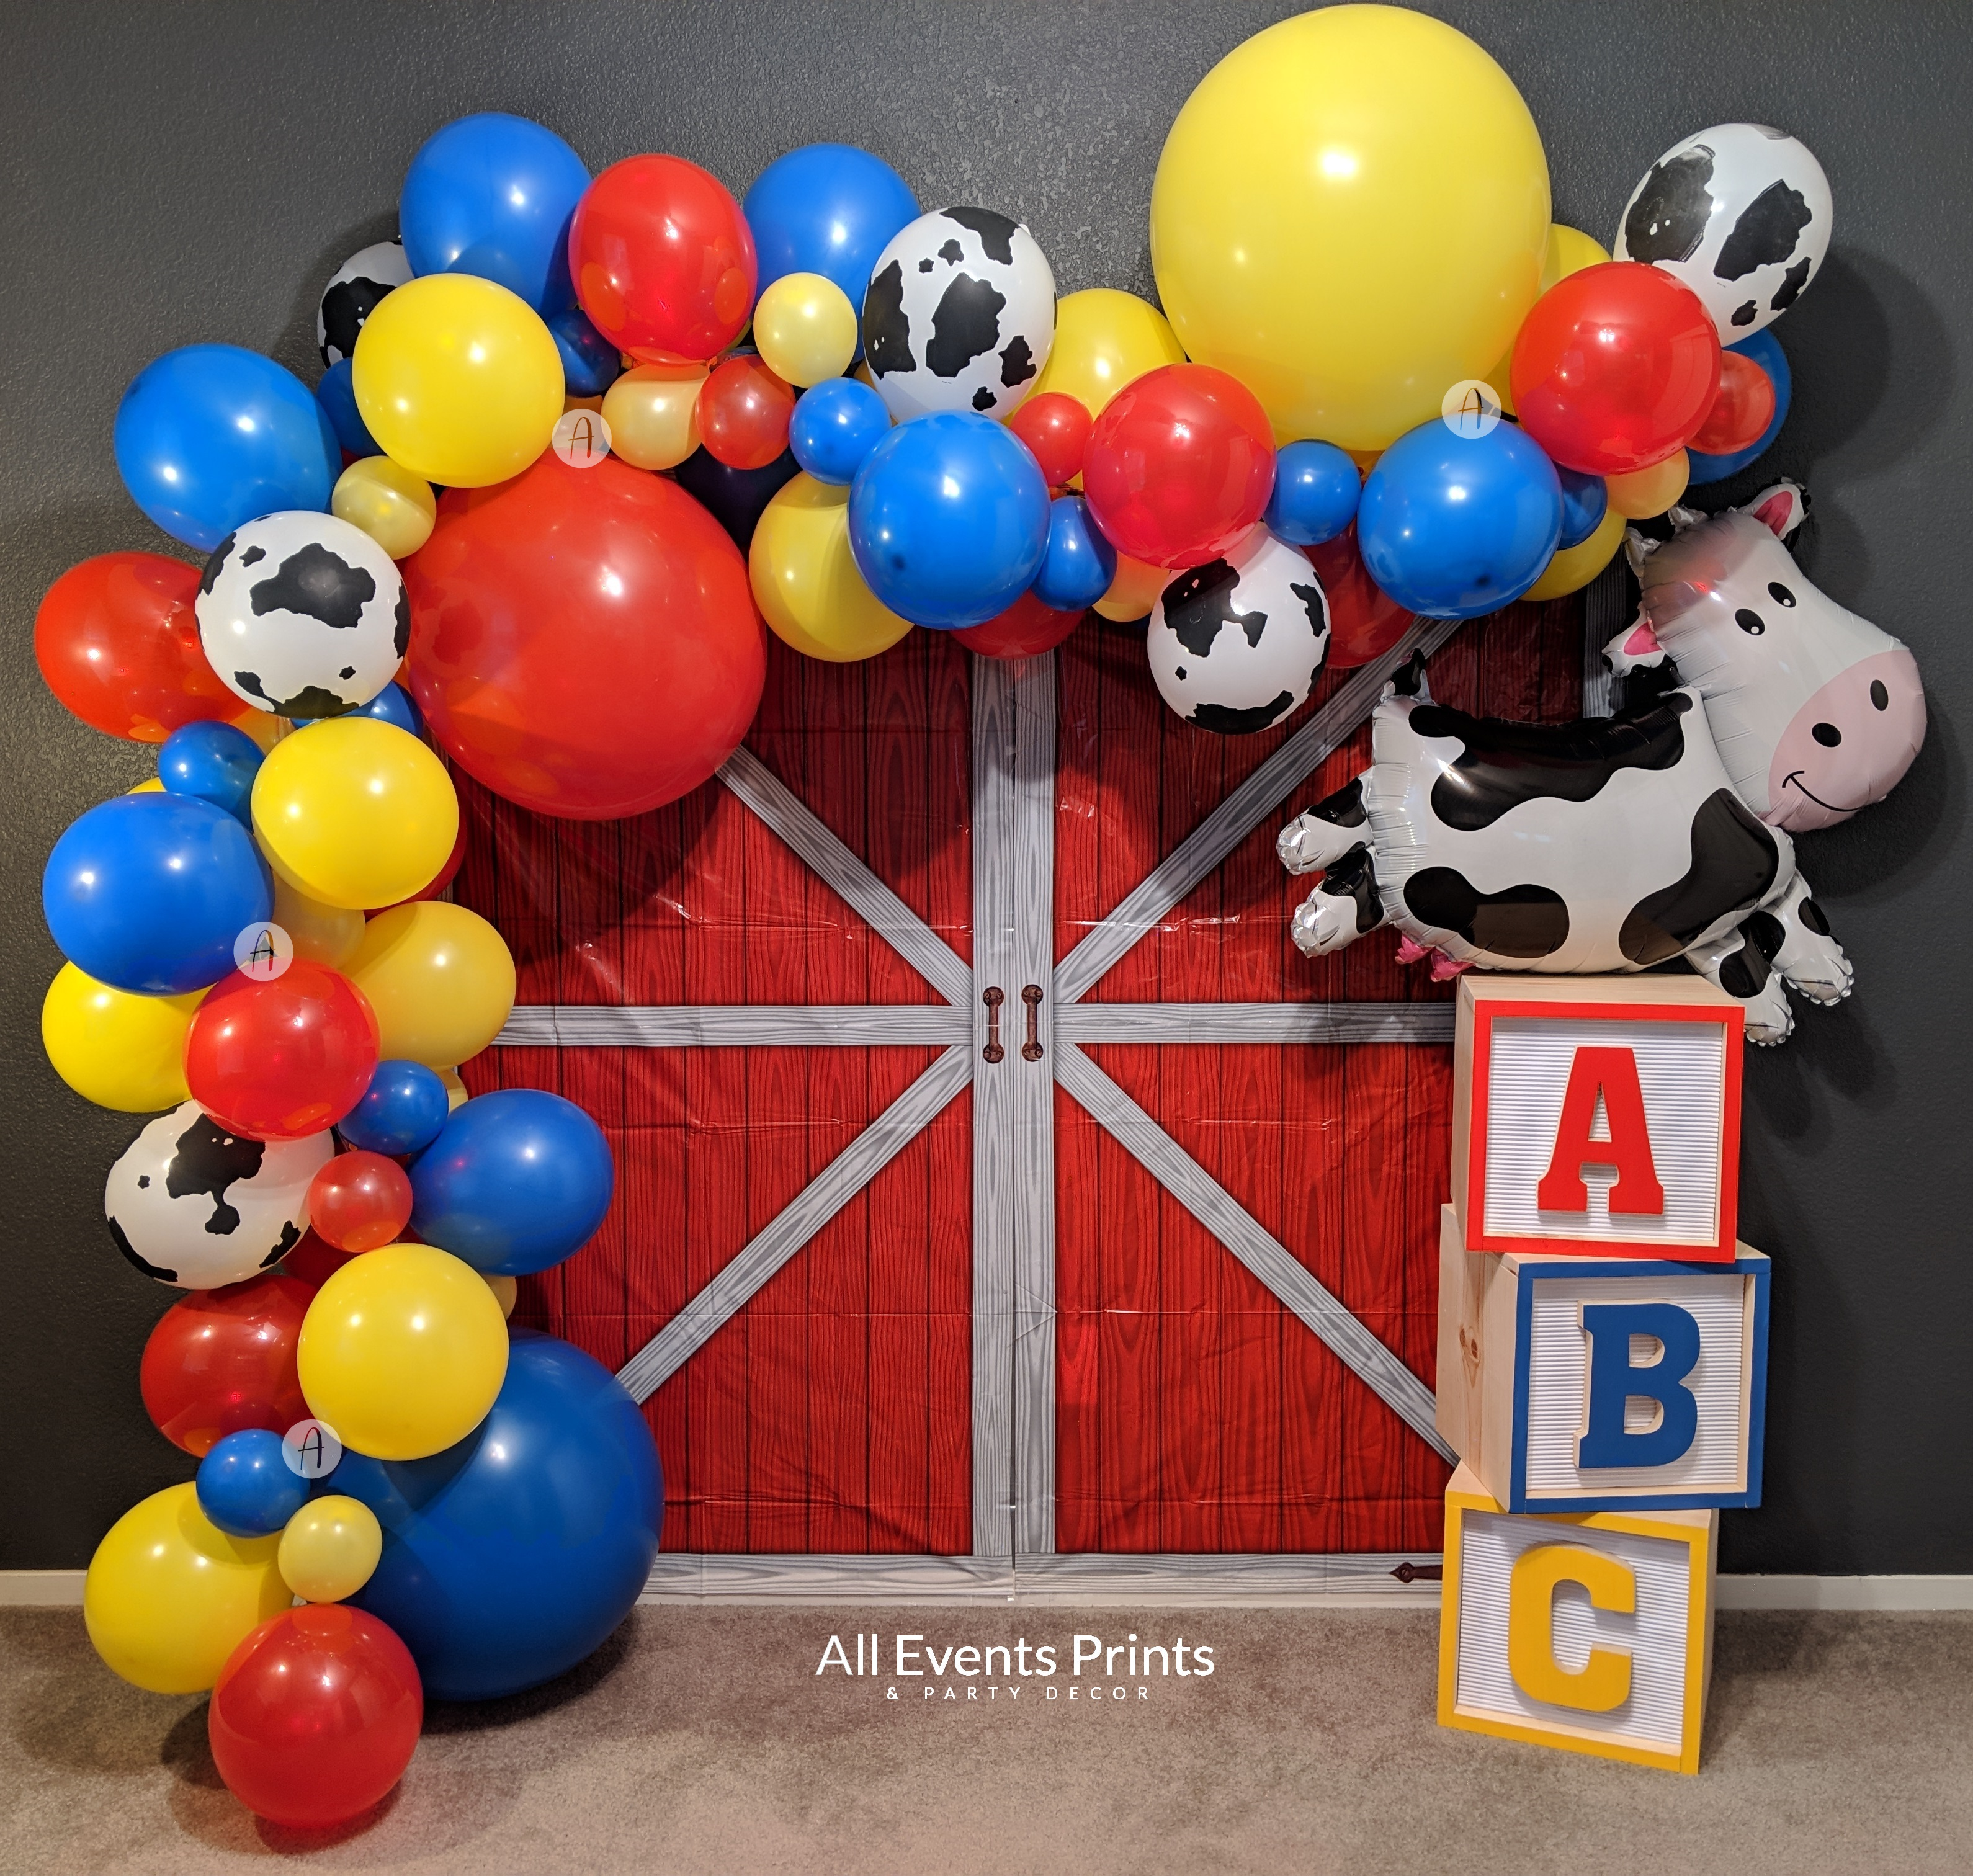 Toy Story Inspired Balloon Garland Diy 10 15 Ft Baby Shower Birthday Party Etc Includes Pump Wall Hooks All Events Prints Party Decor